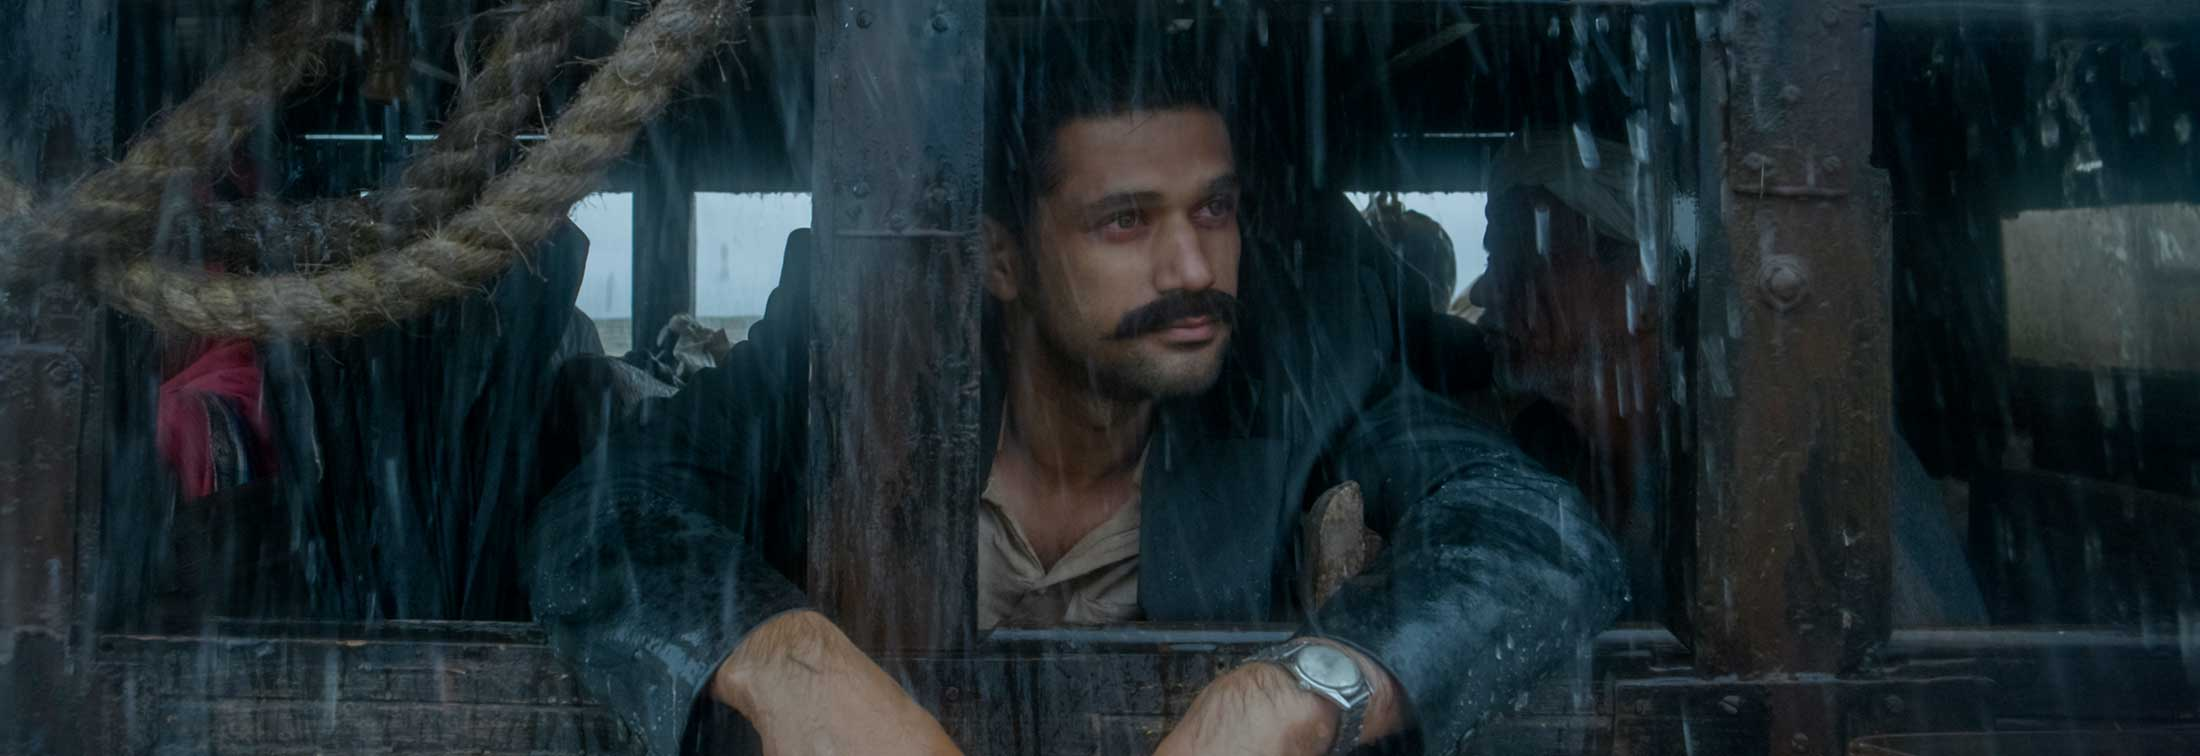 review, Tumbbad, Tumbbad, film, movie, latest movies, new movie, movie ratings, current movie reviews, latest films, recent movies, current movies, movie critics, new movie reviews, latest movie reviews, latest movies out, the latest movies, review film, latest cinema releases, Australian reviews, cinema, cinema reviews, Sohum Shah, Mohammad Samad, Jyoti Malshe, Dhundiraj Prabhakar Jogalekar, Ronjini Chakraborty, Anita Date, Rudra Soni, Madhav Hari Joshi, Piyush Kaushik, Deepak Damle, Rahi Anil Barve, Drama, Fantasy, Horror, Thriller